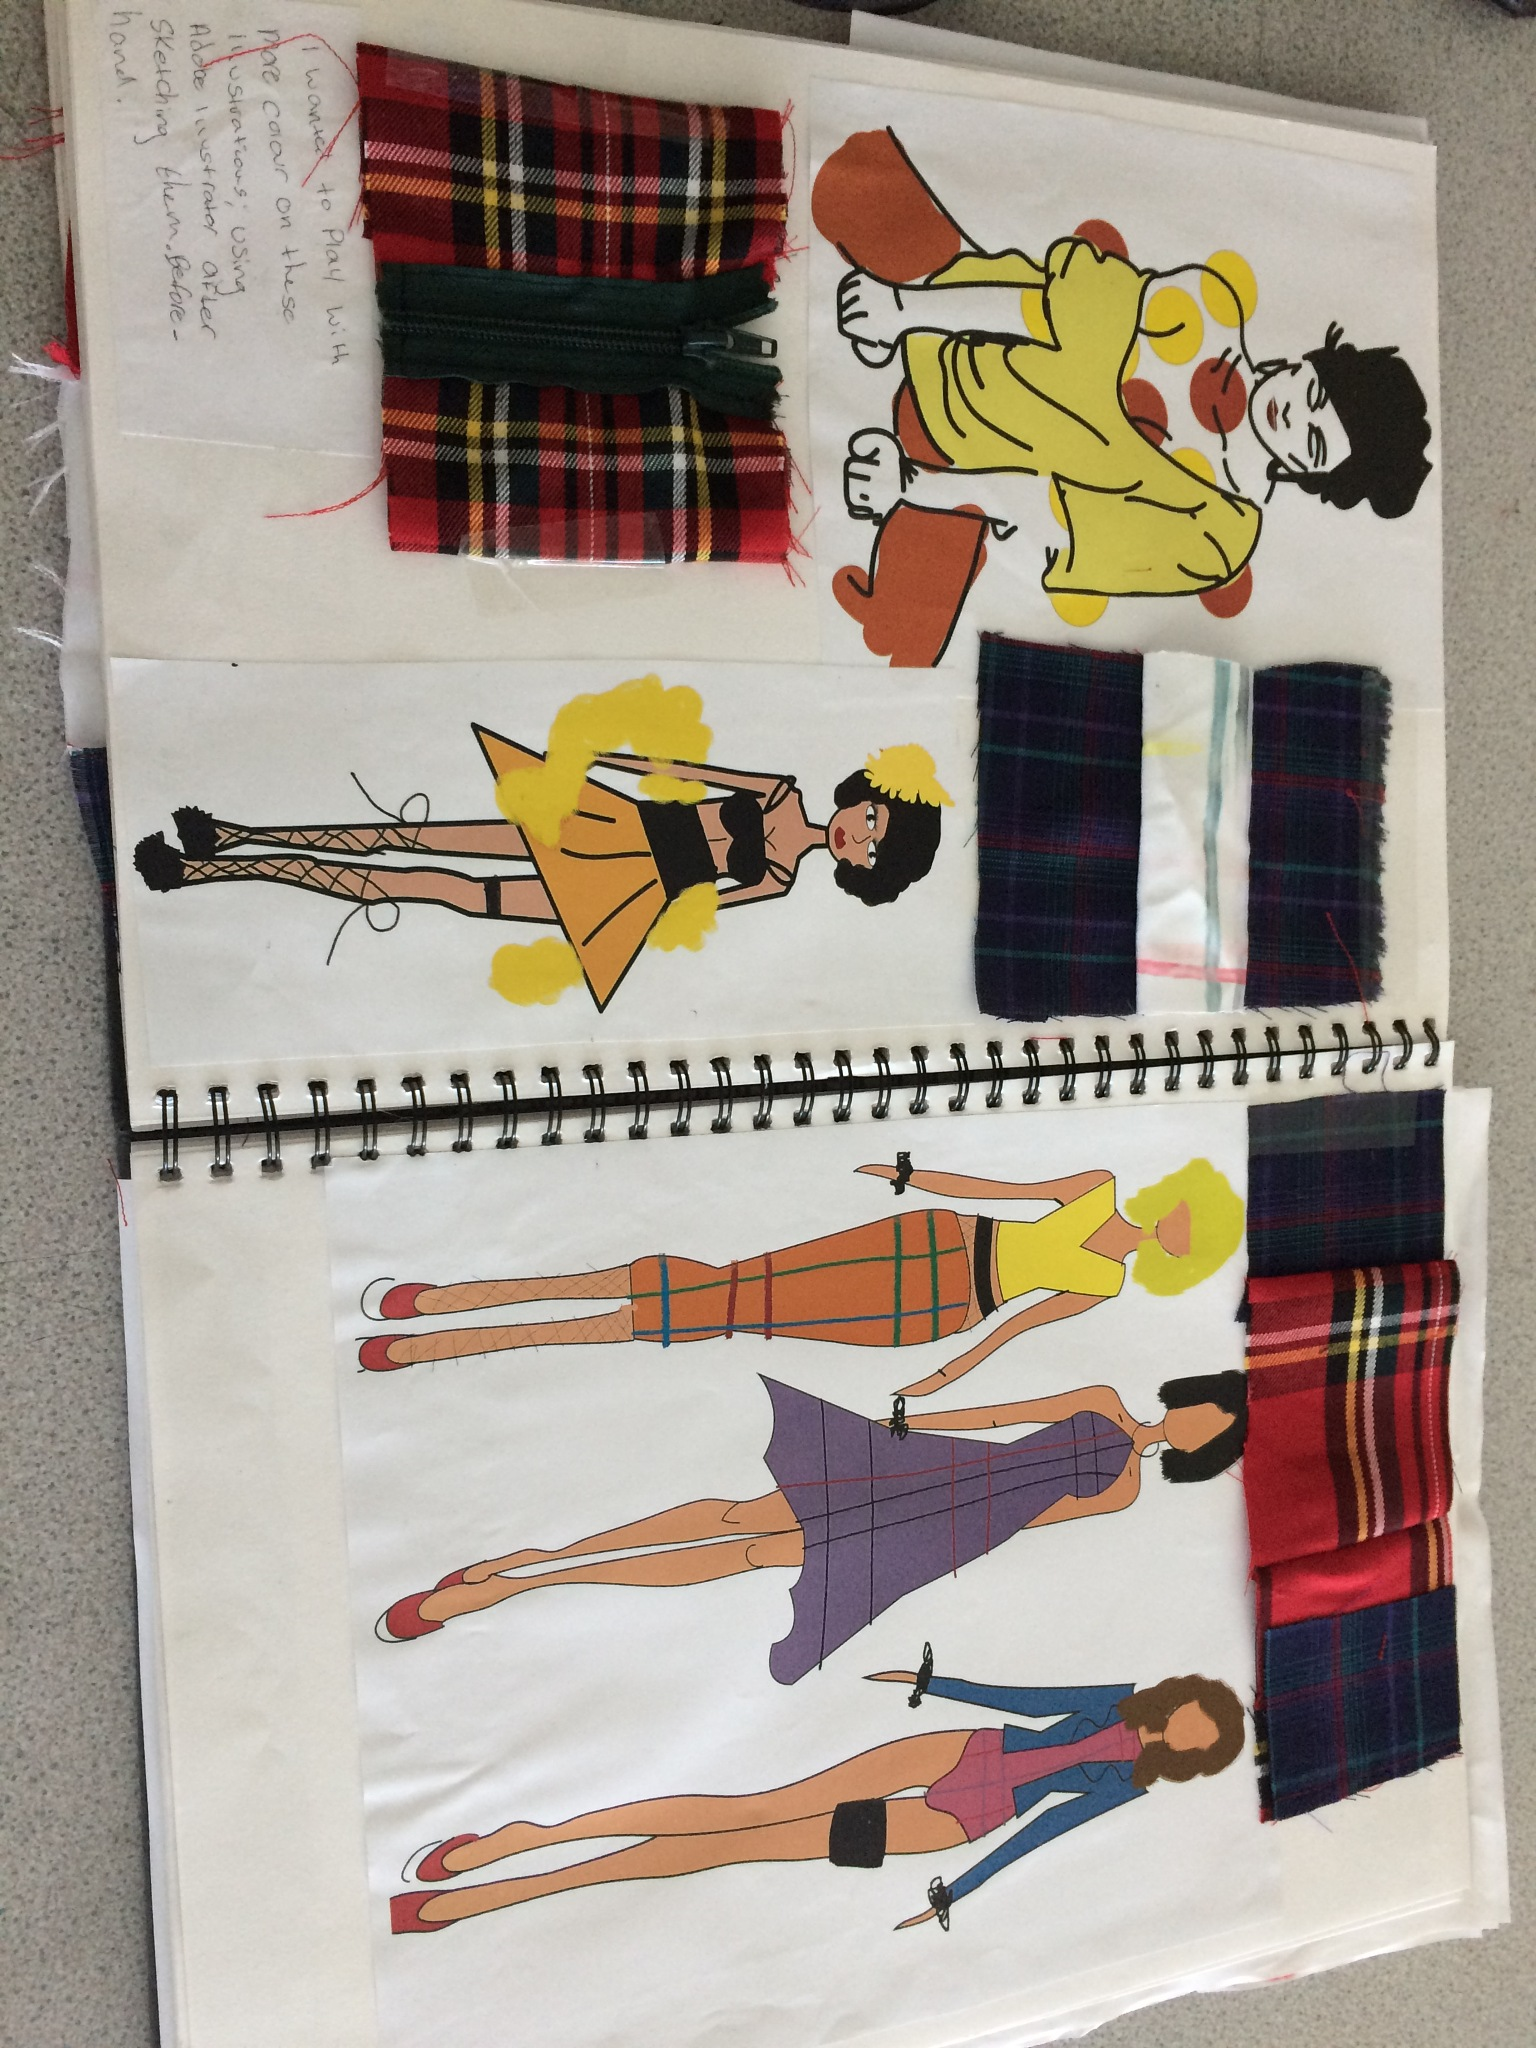 Sketch book and a few of my illustrations inside  by Shannon Hargreaves